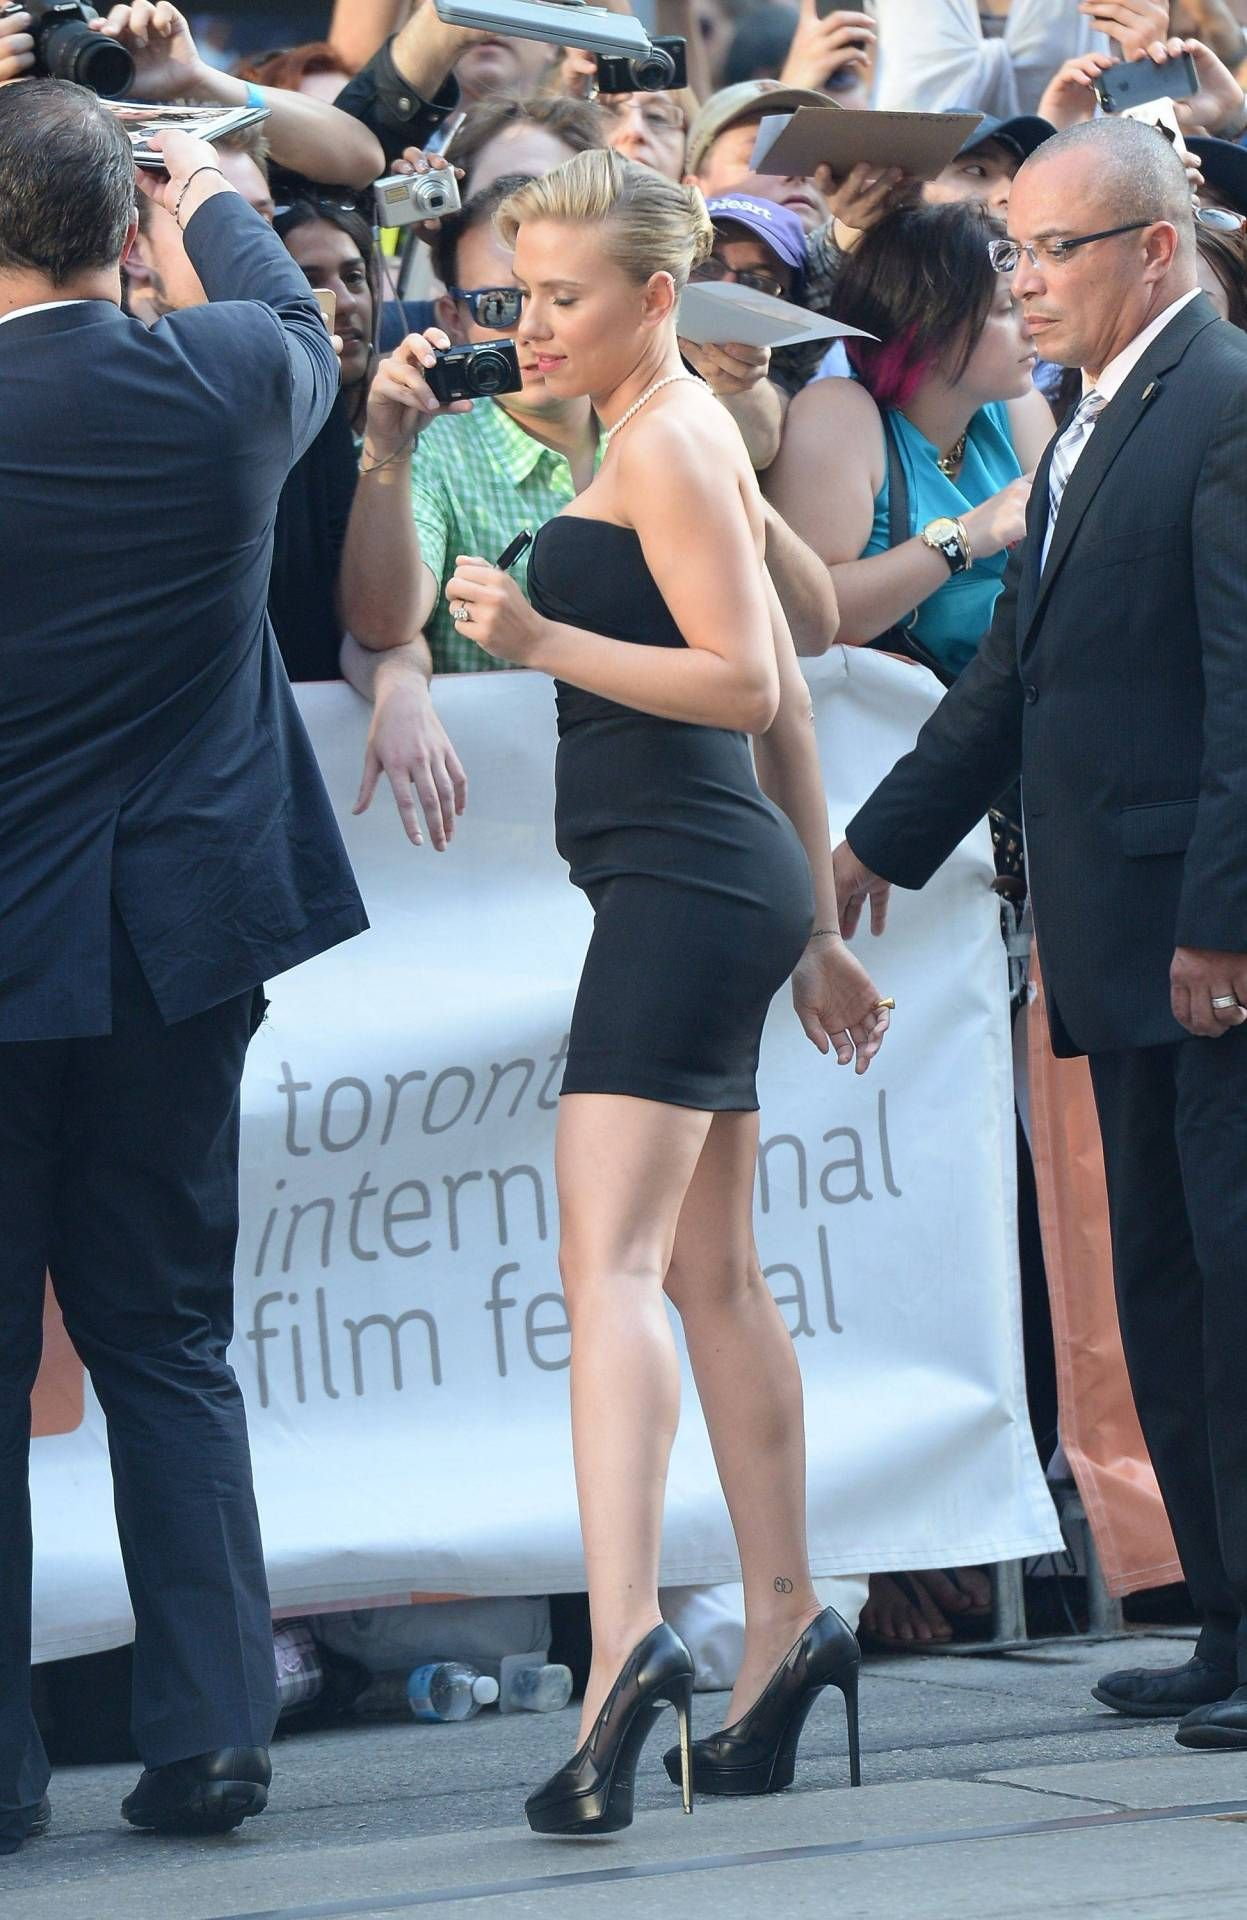 scarlett johansson and her shapely legs and curves in a